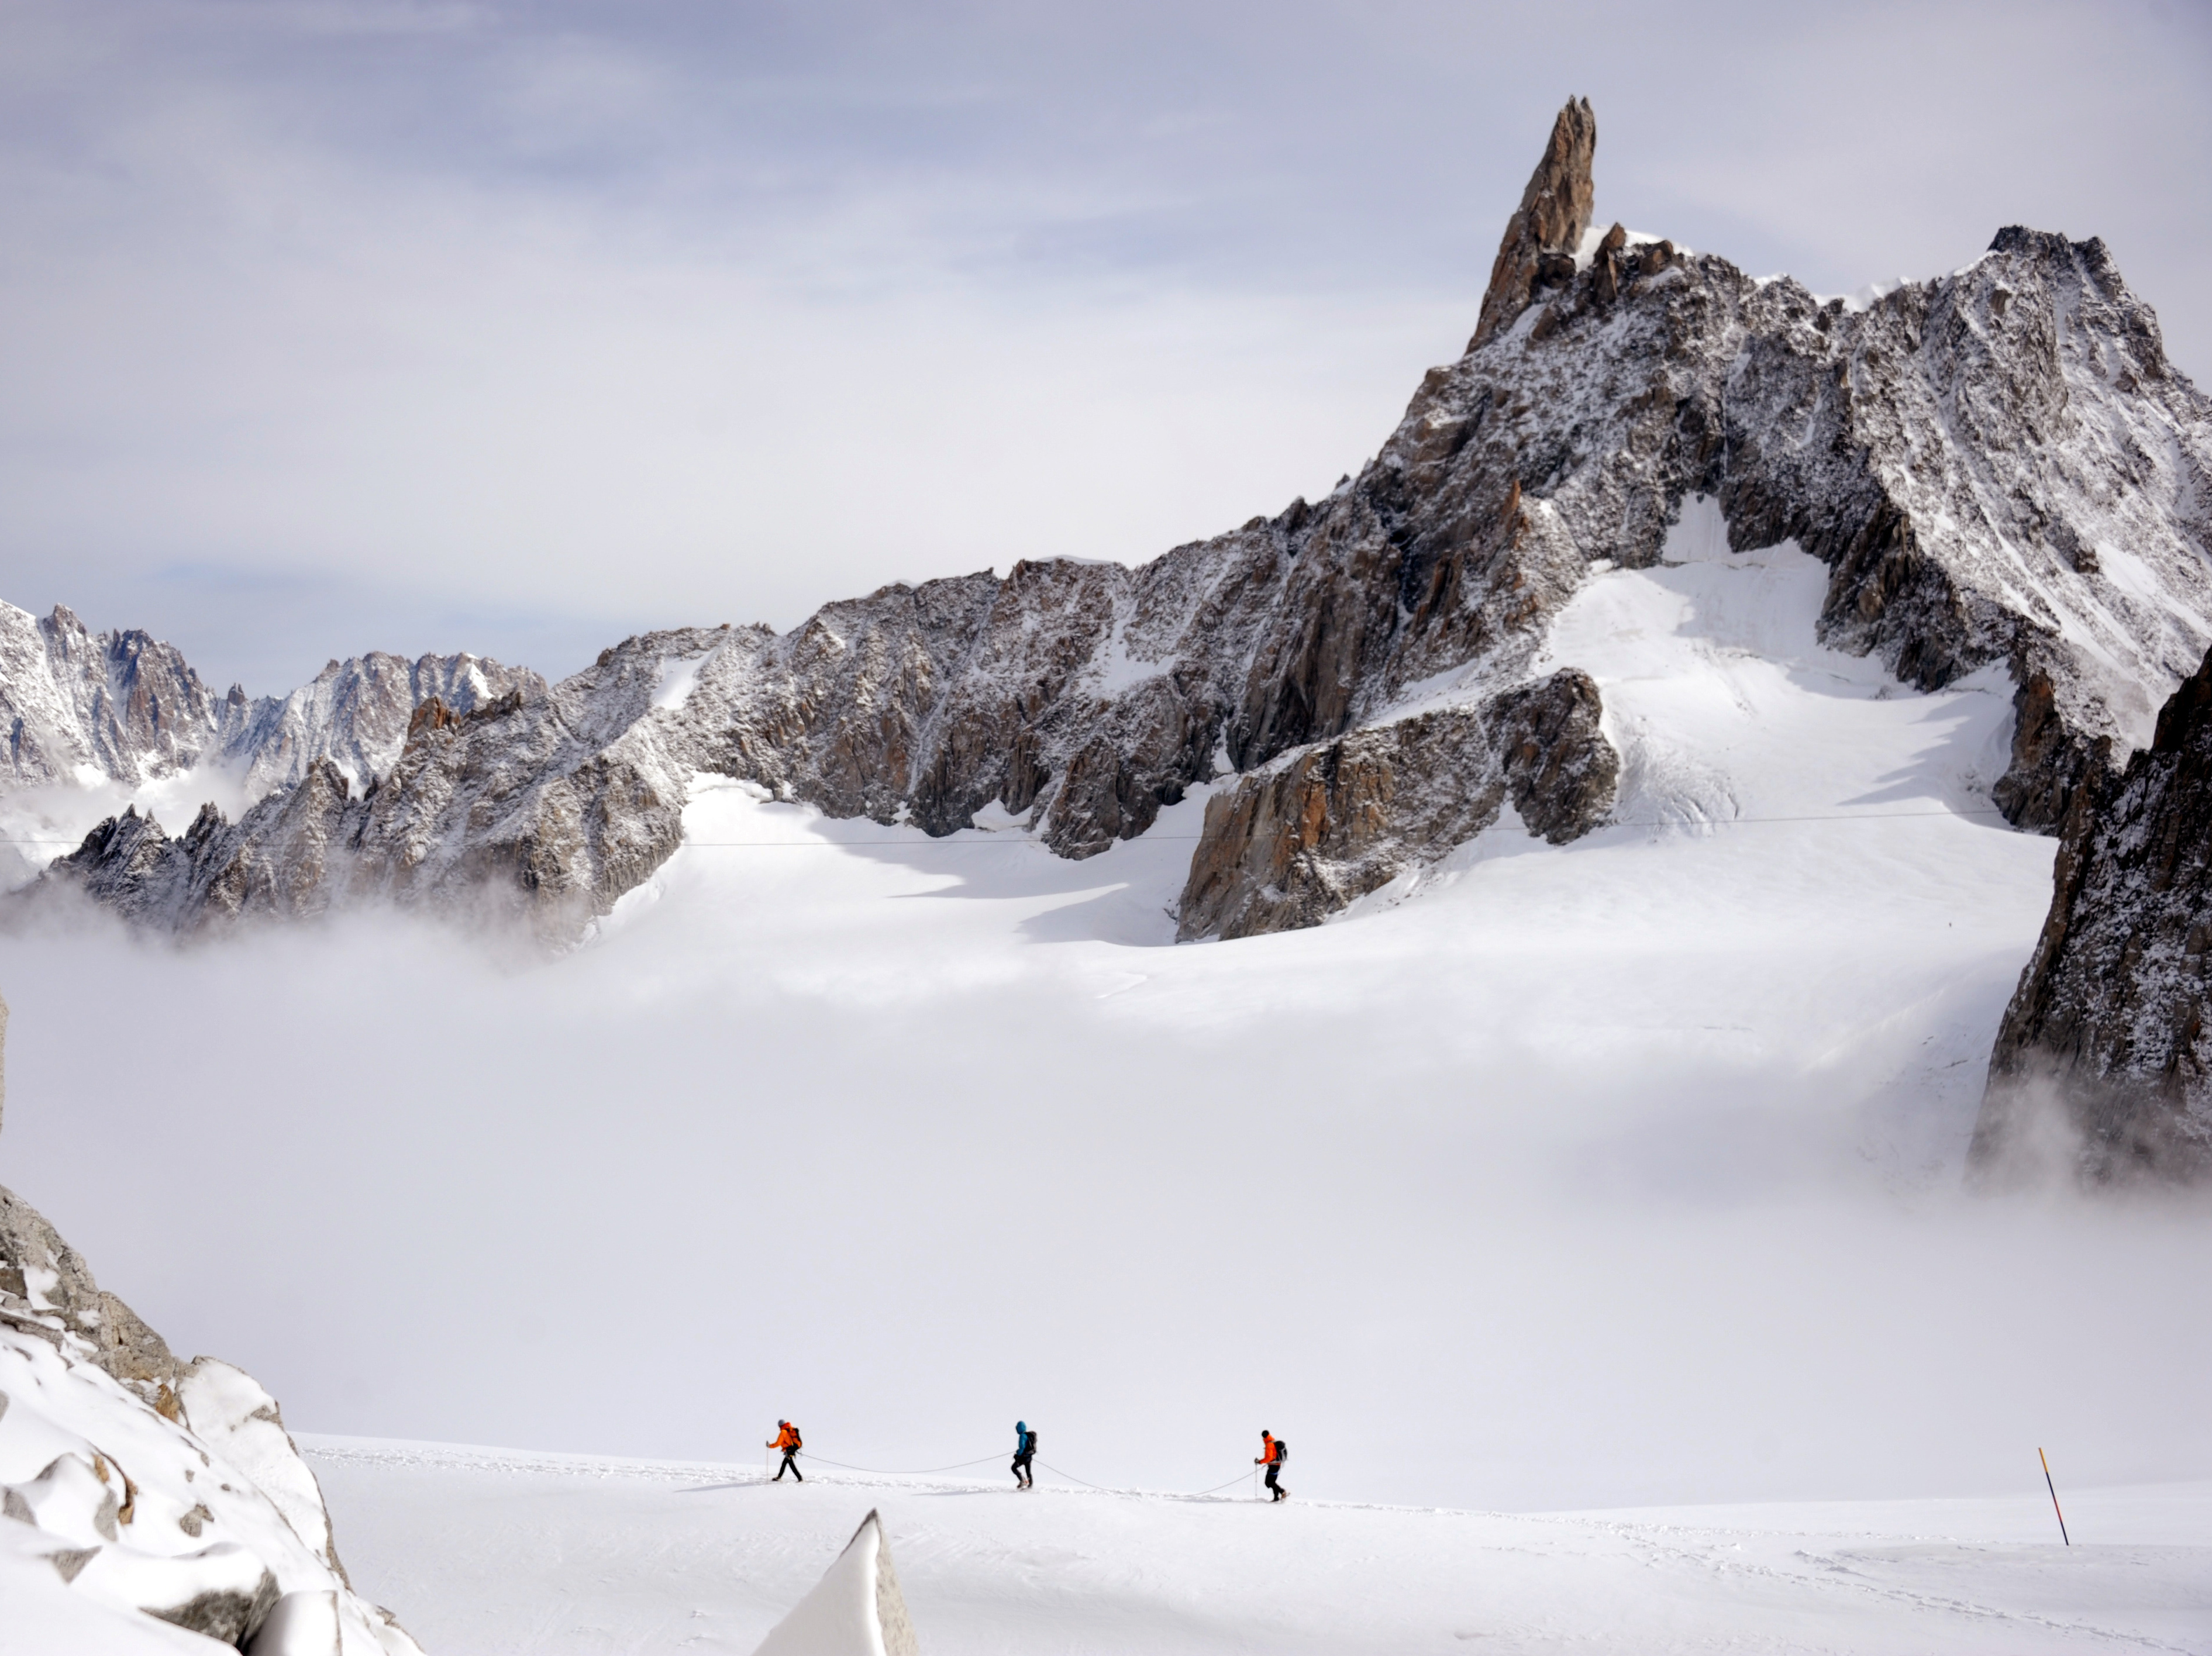 Jewels Found In Alps May Be From Decades-Old Plane Crash